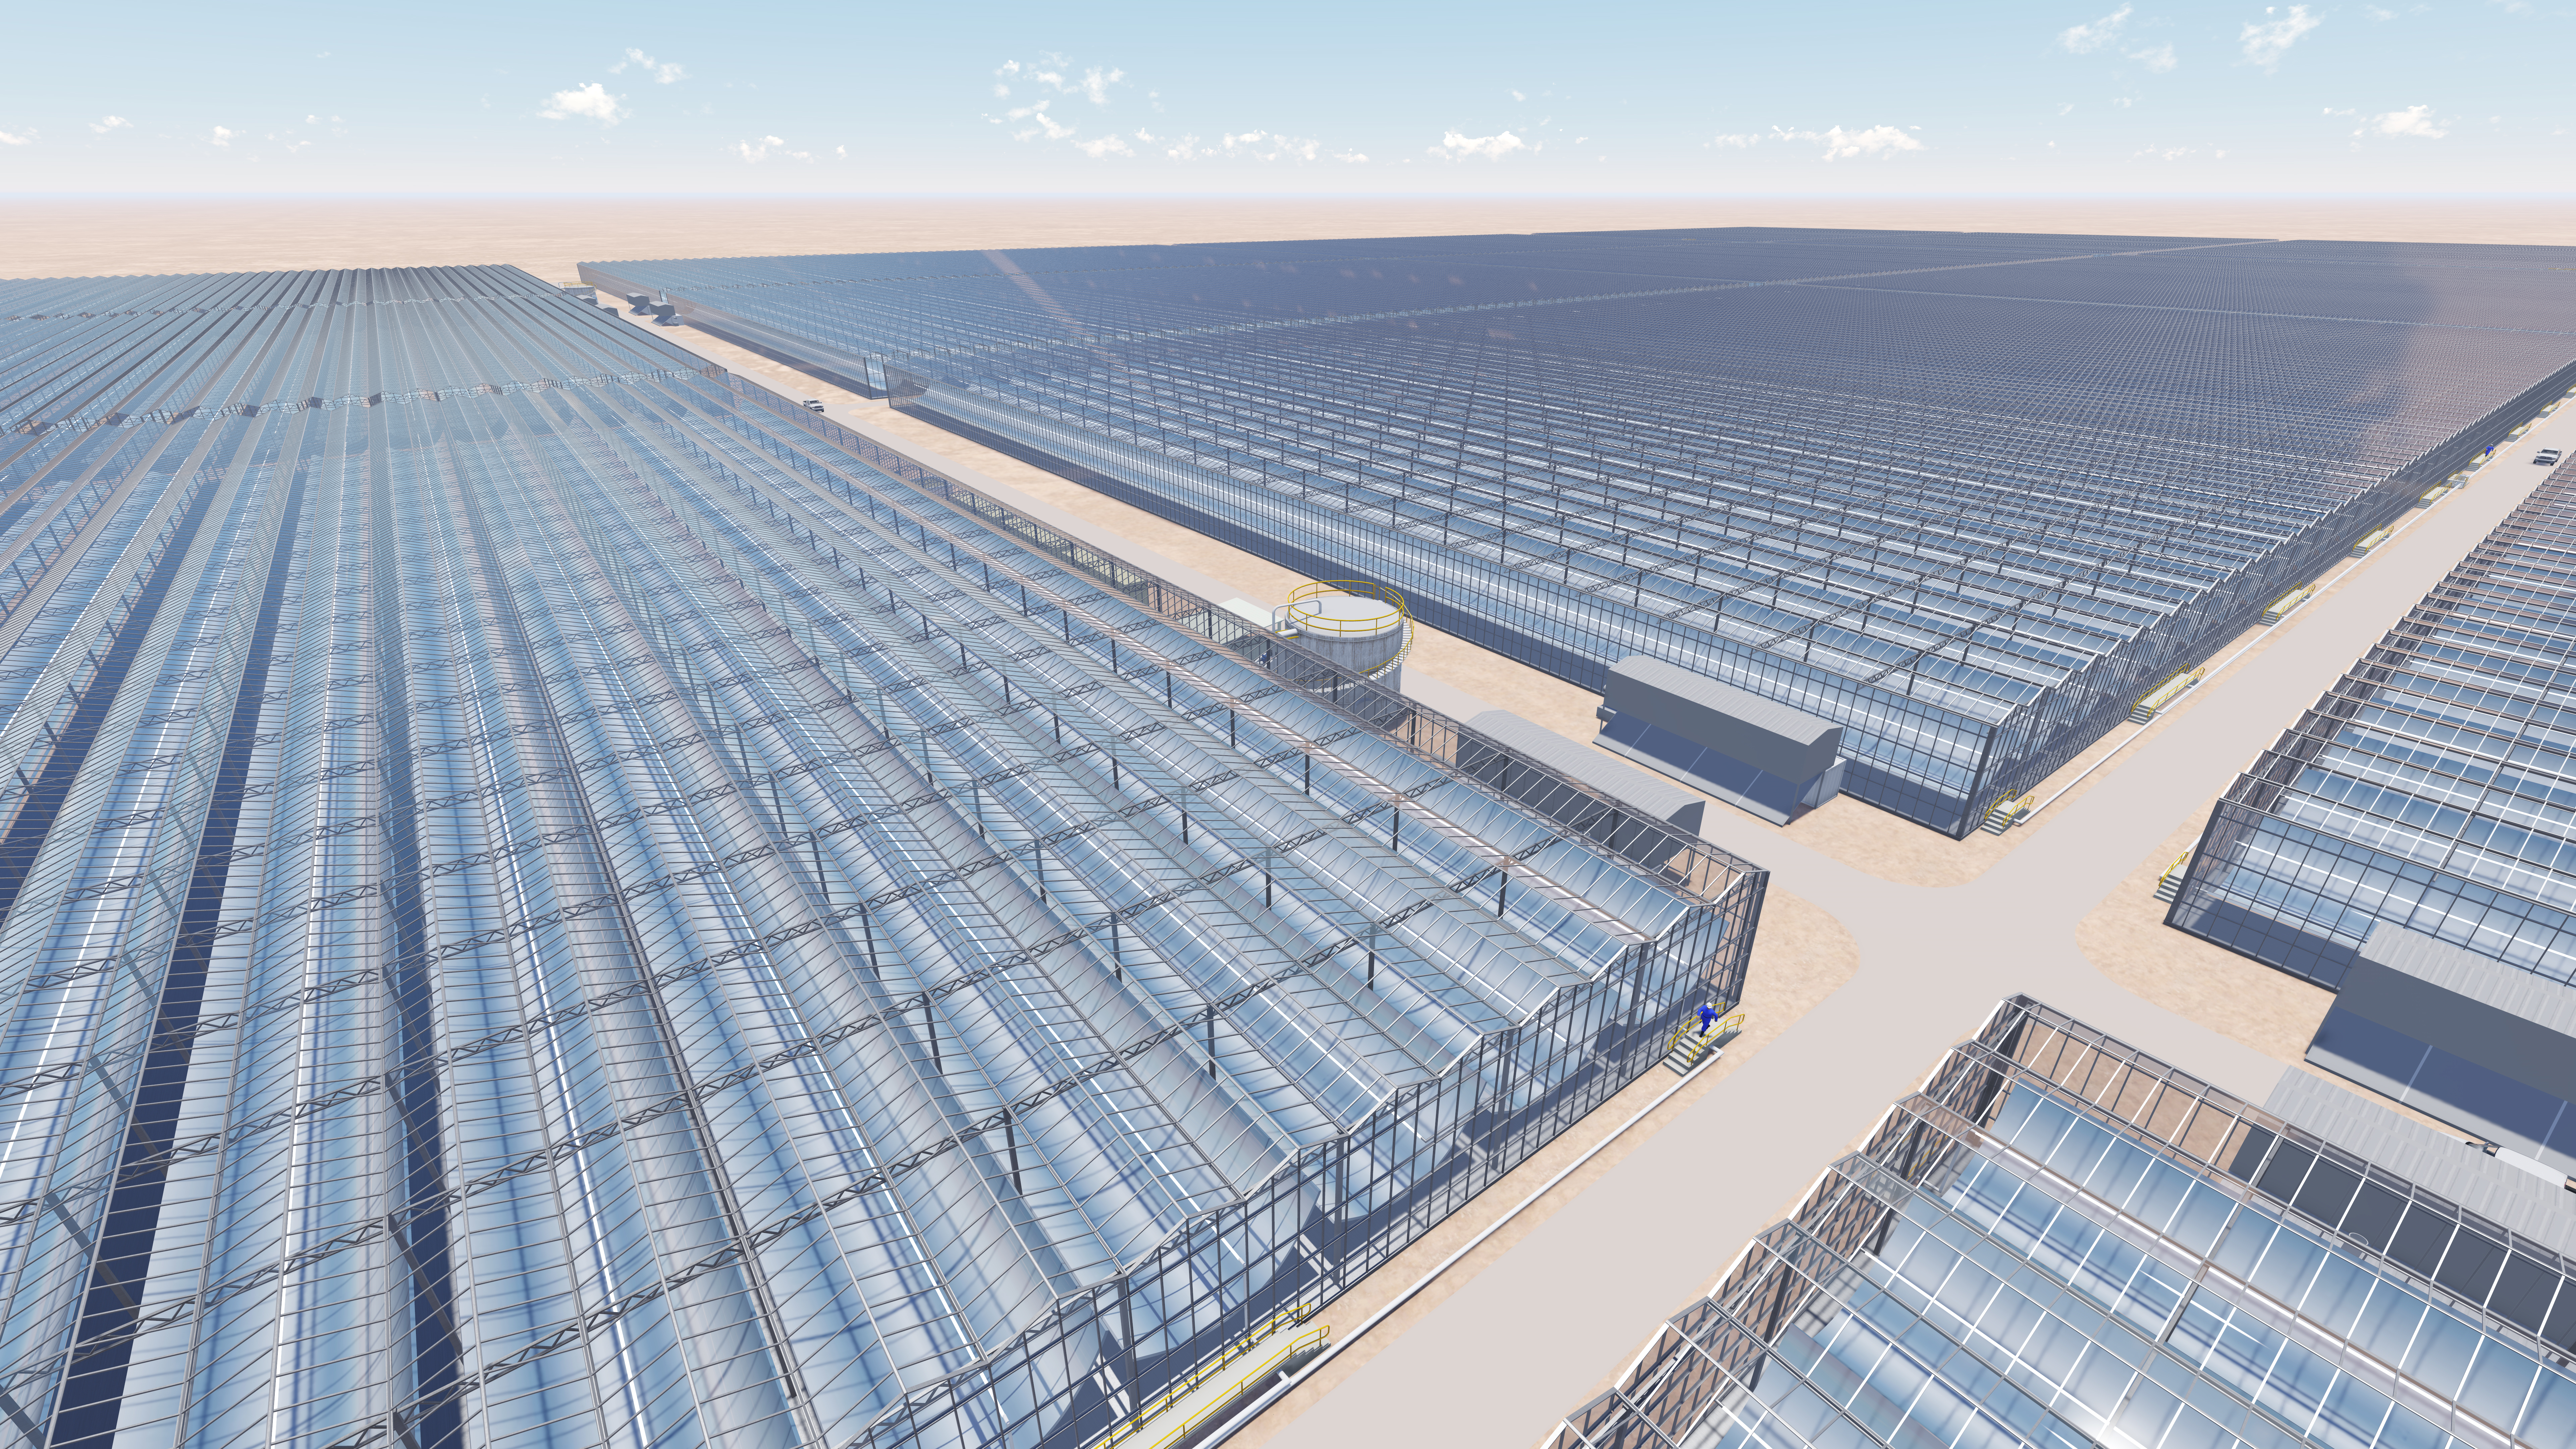 A rendering of a solar farm that will be built in Oman and used to recover oil.